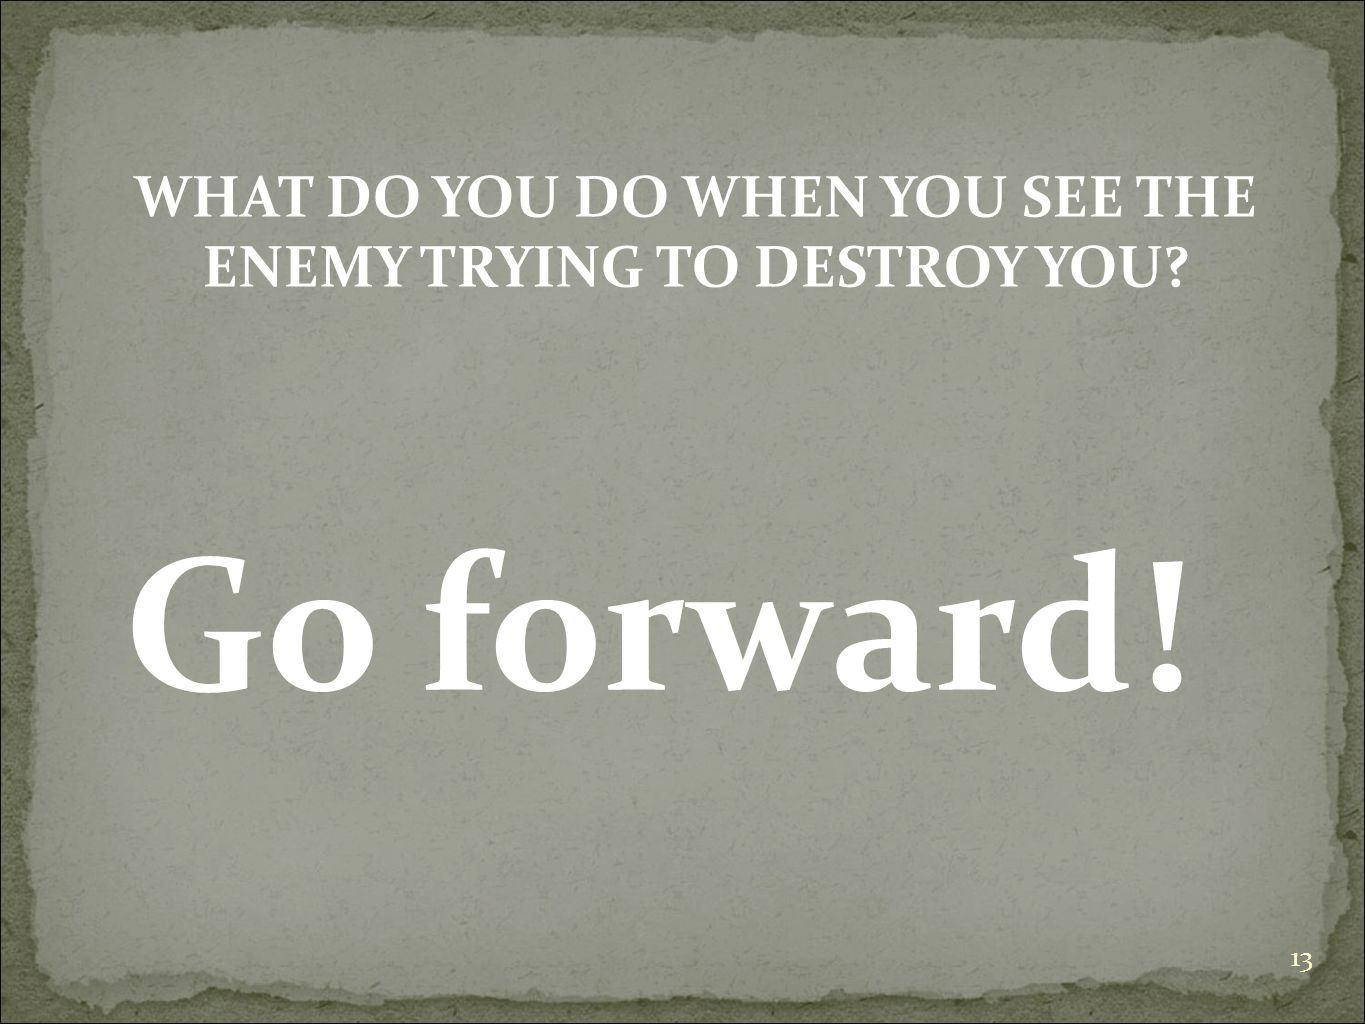 13 WHAT DO YOU DO WHEN YOU SEE THE ENEMY TRYING TO DESTROY YOU? Go forward!